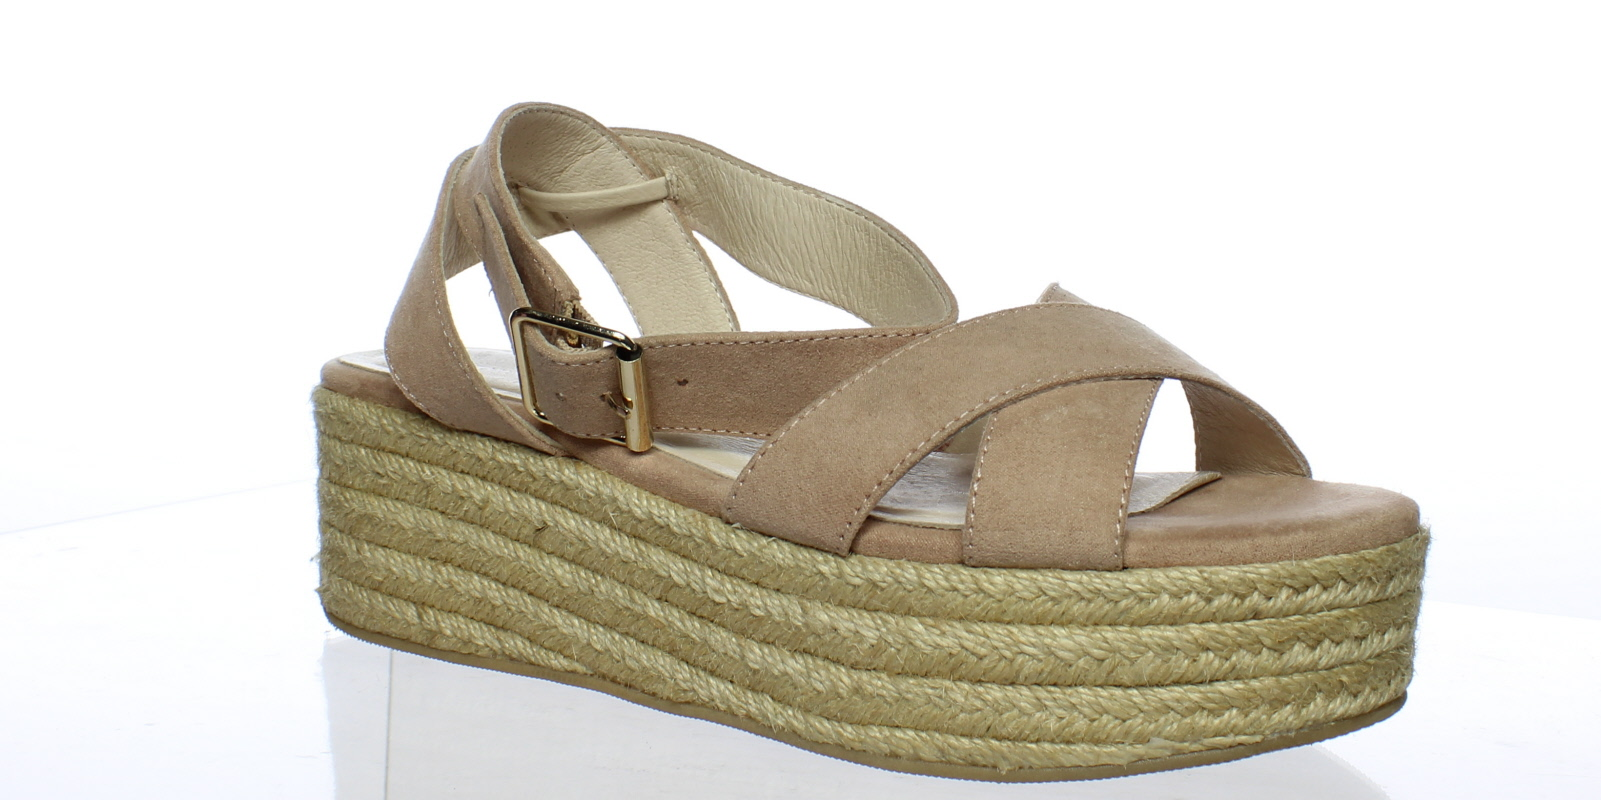 2cba13a995ca Chinese Laundry Womens Zala Dark Nude Suede Espadrilles Size 7 ...